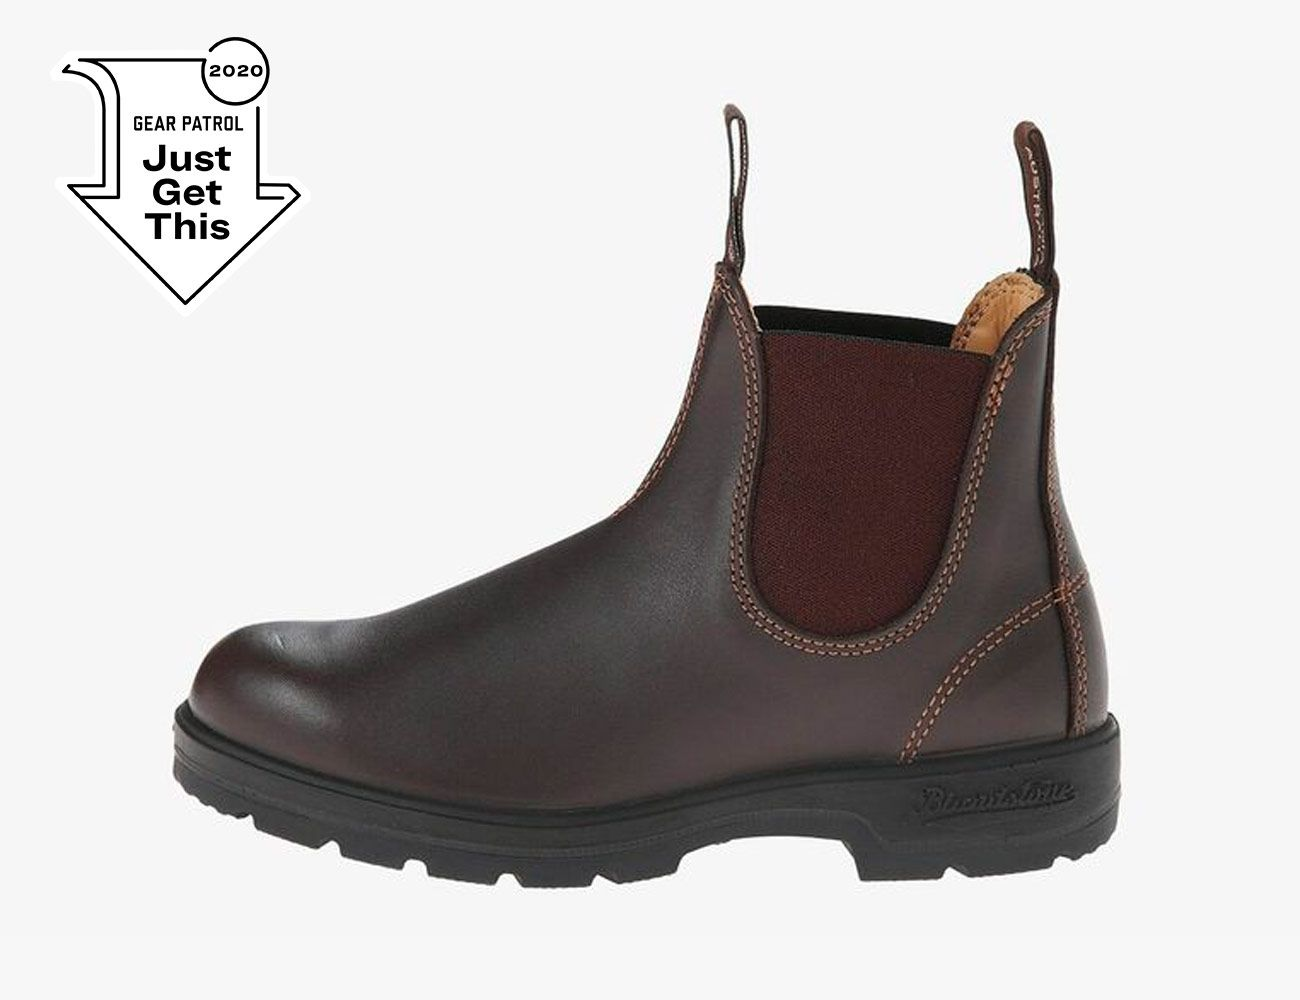 The 8 Best Chelsea Boots for Men